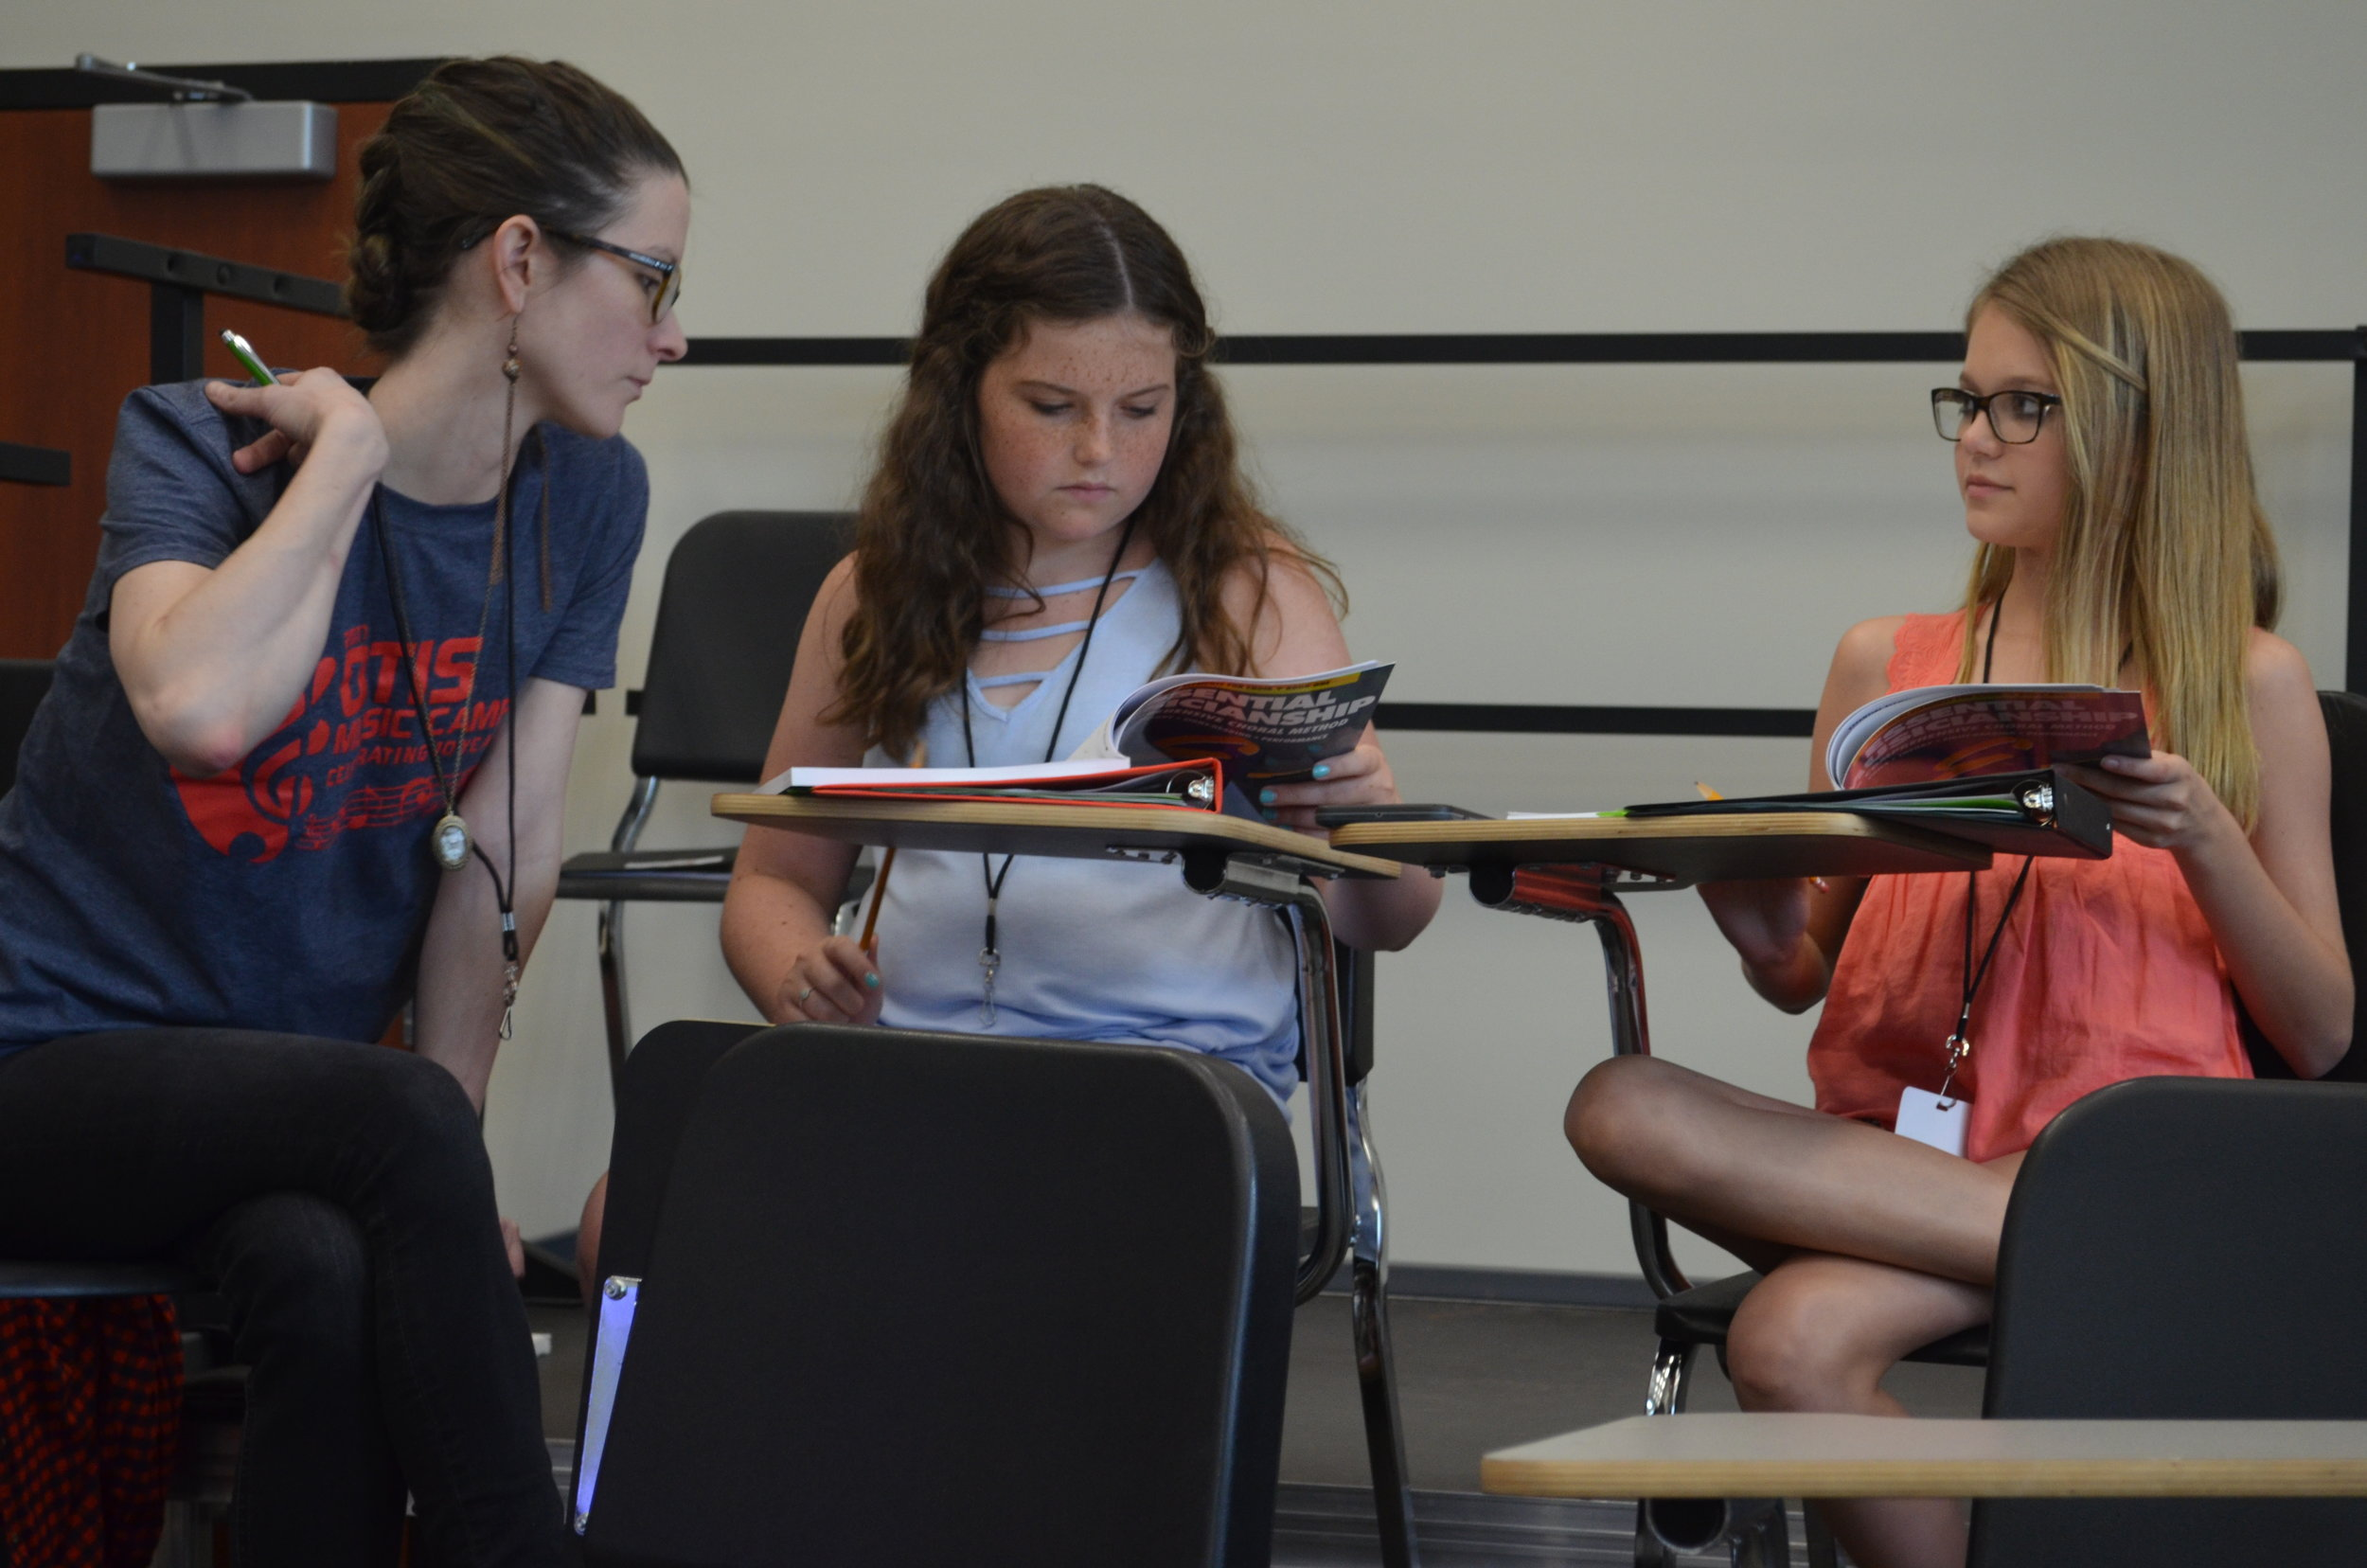 Coach Chelsea helping campers through music theory exercises.